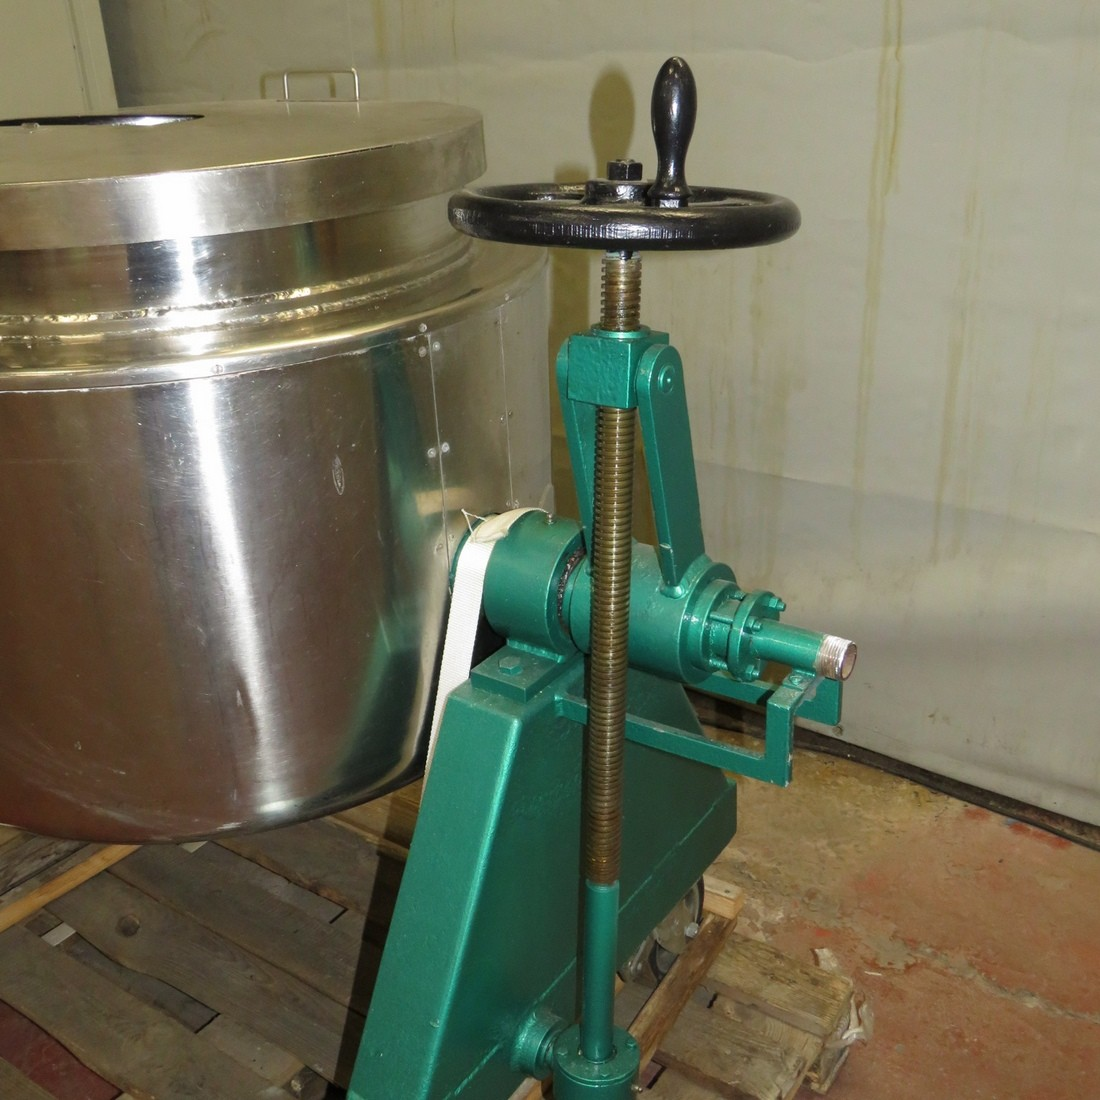 R11DB22647  Stainless steel BIONAZ melter 150 litres